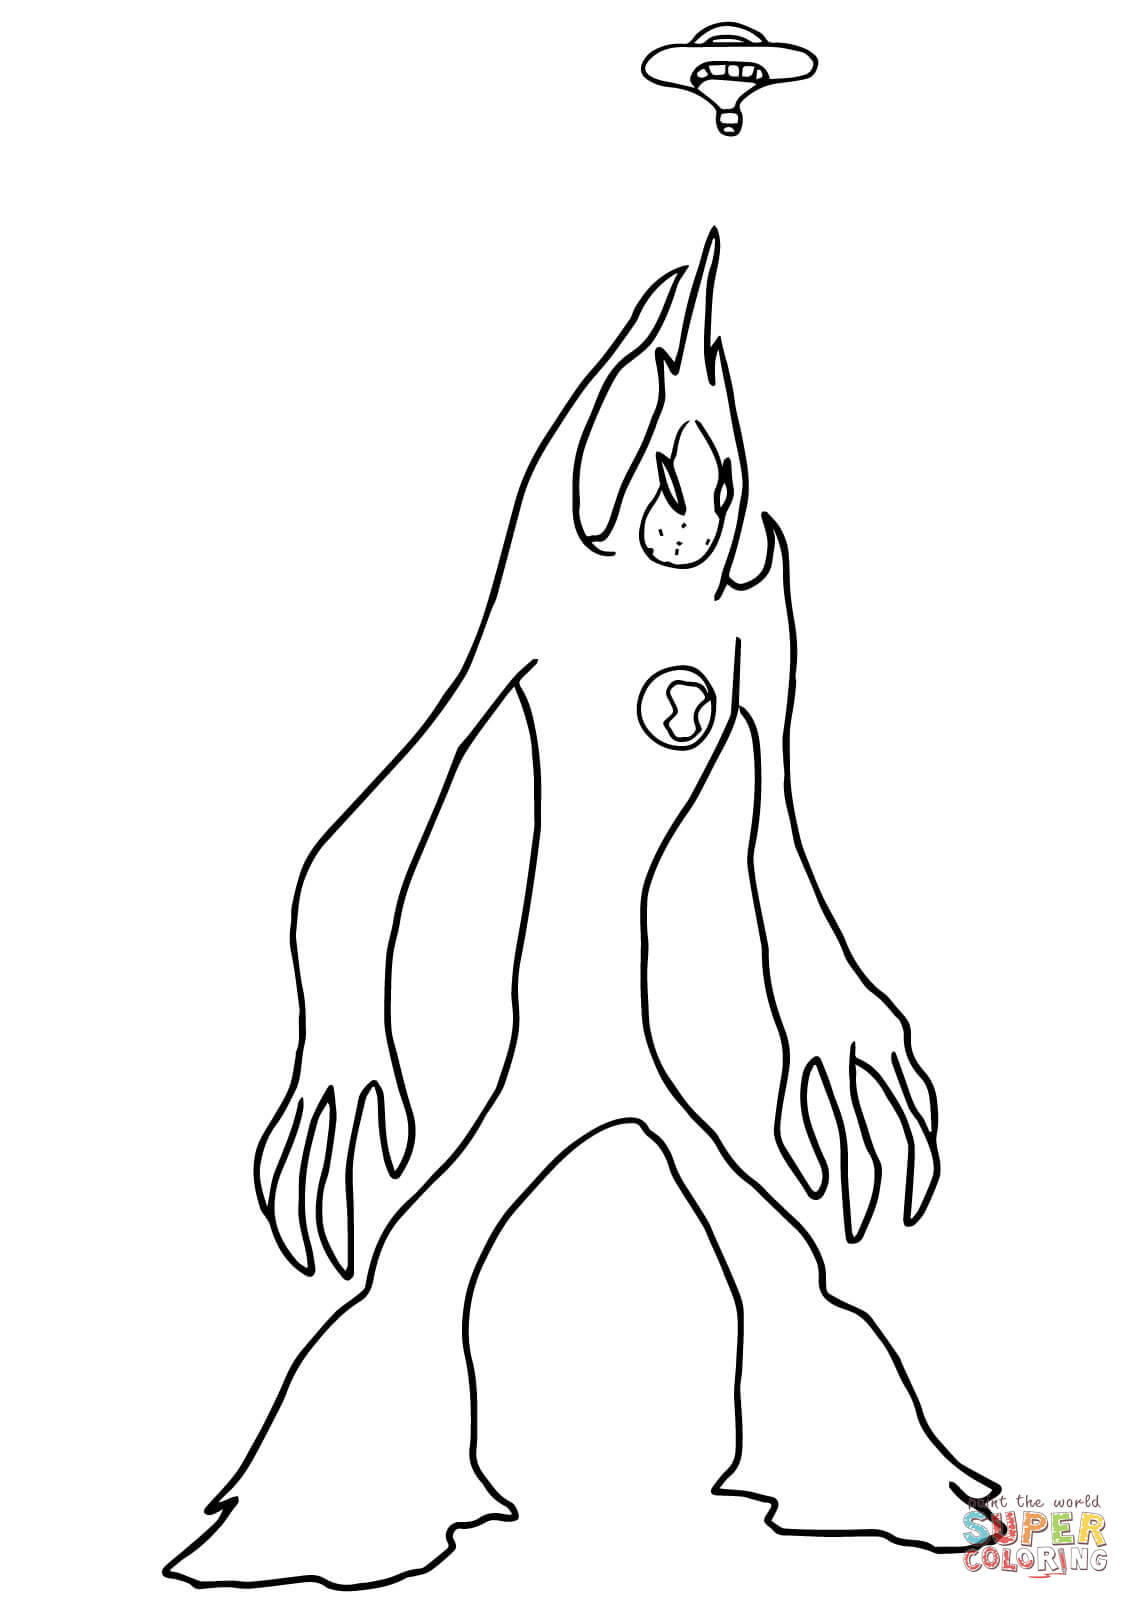 Ben 10 Alien Force Goop From Ben 10 Coloring Page